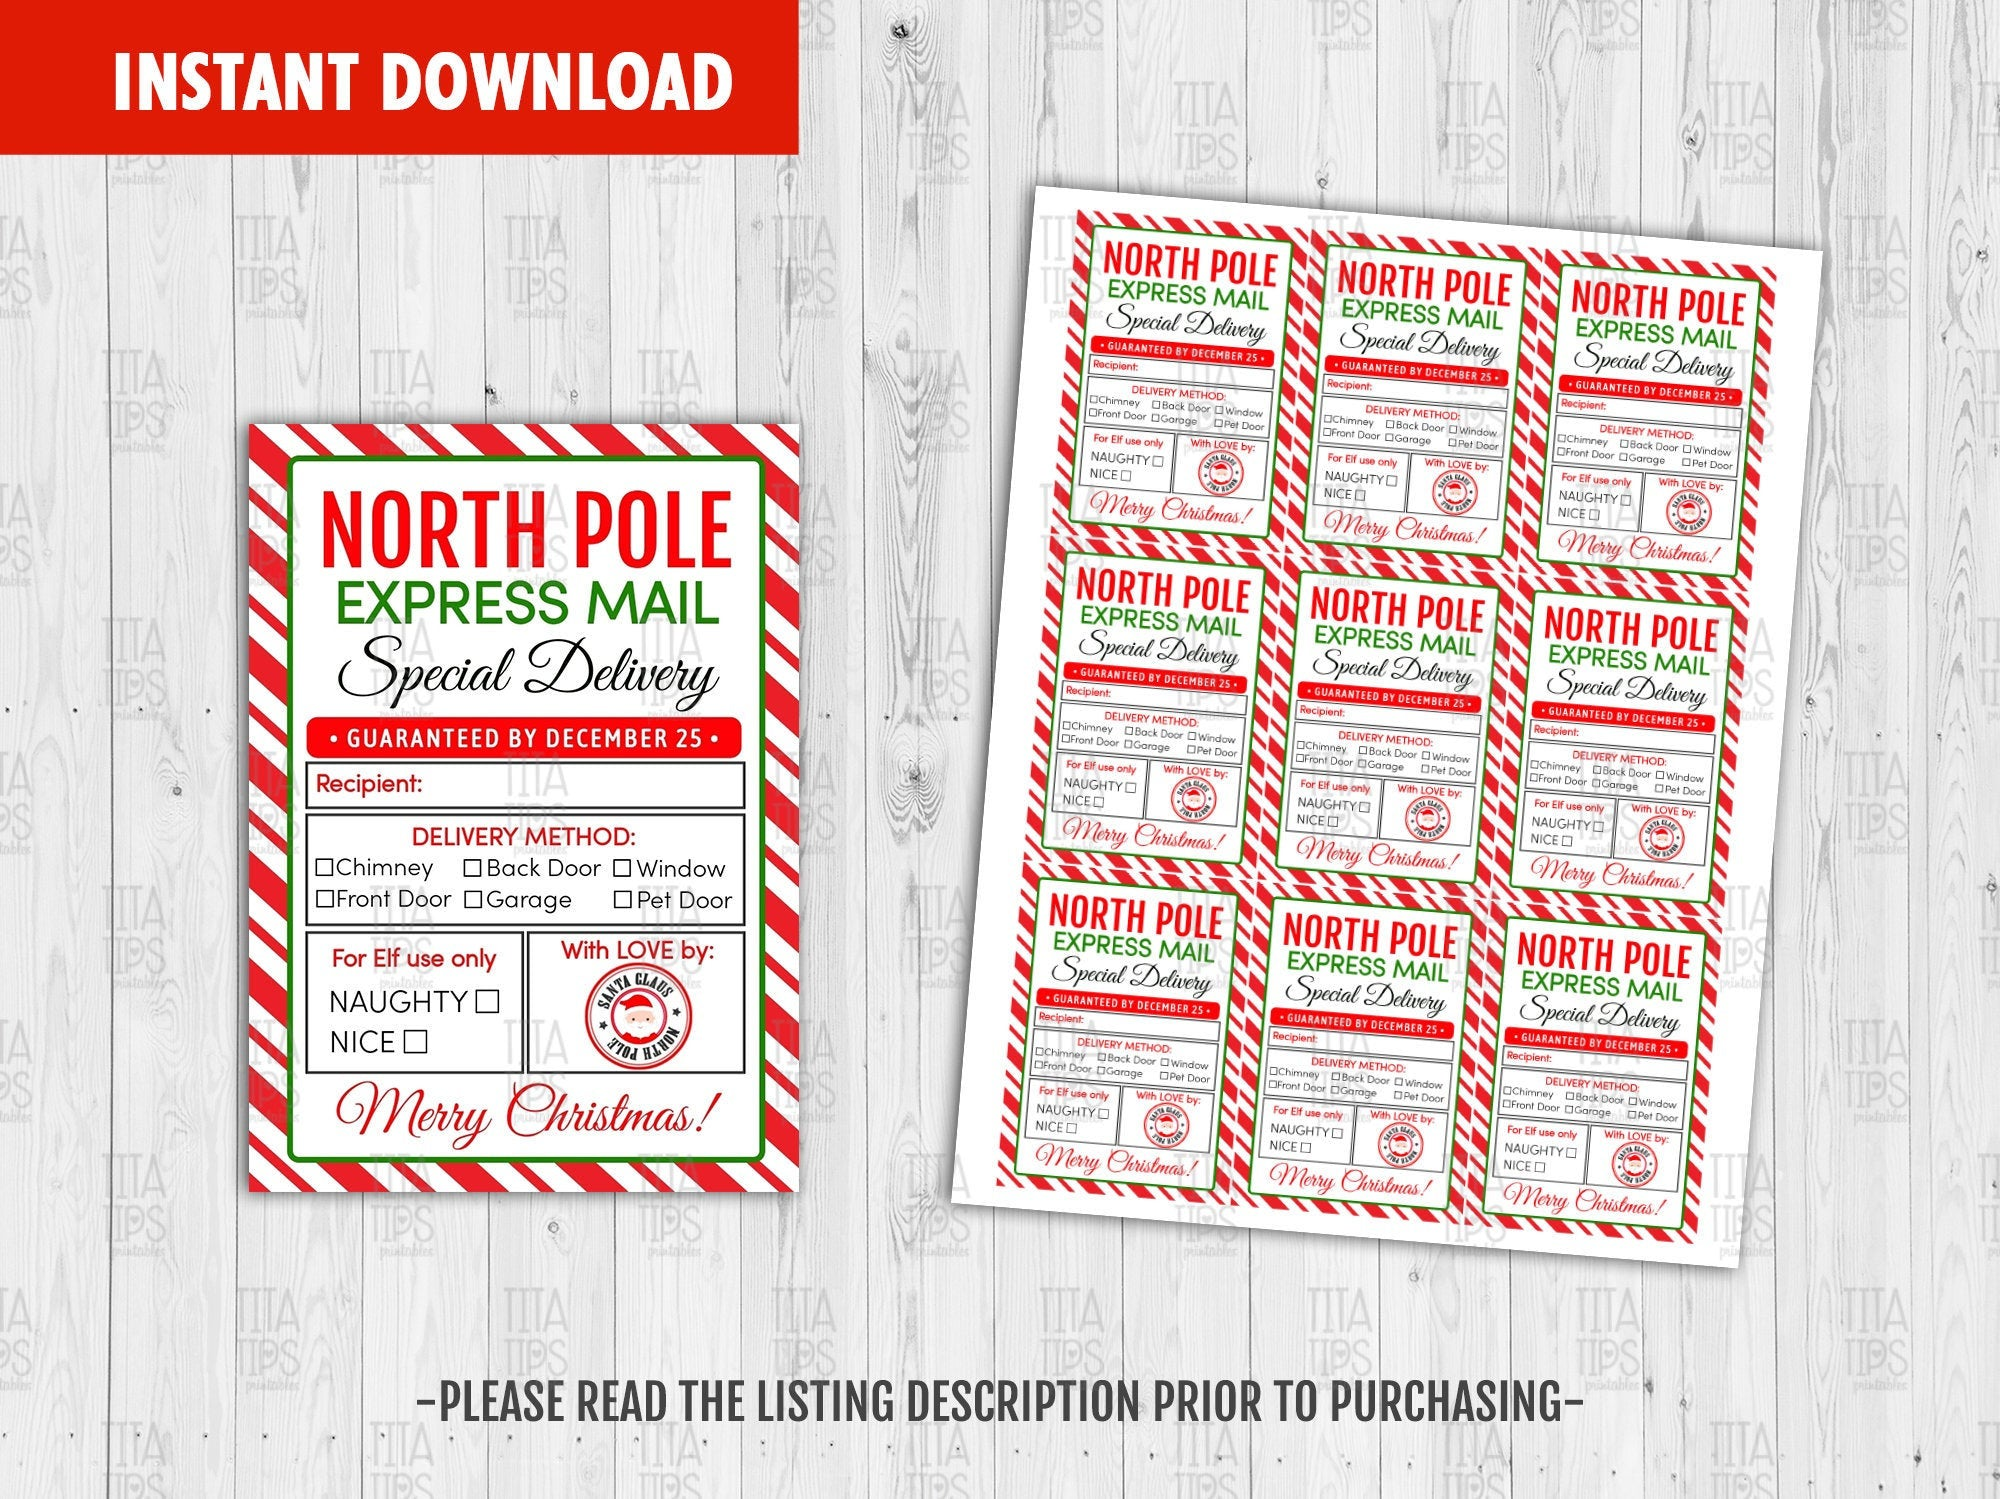 Express Mail Special Delivery Tags, Santa Claus North Pole Label, Merry Christmas Printable Card, Instant Download - TitaTipsPrintables